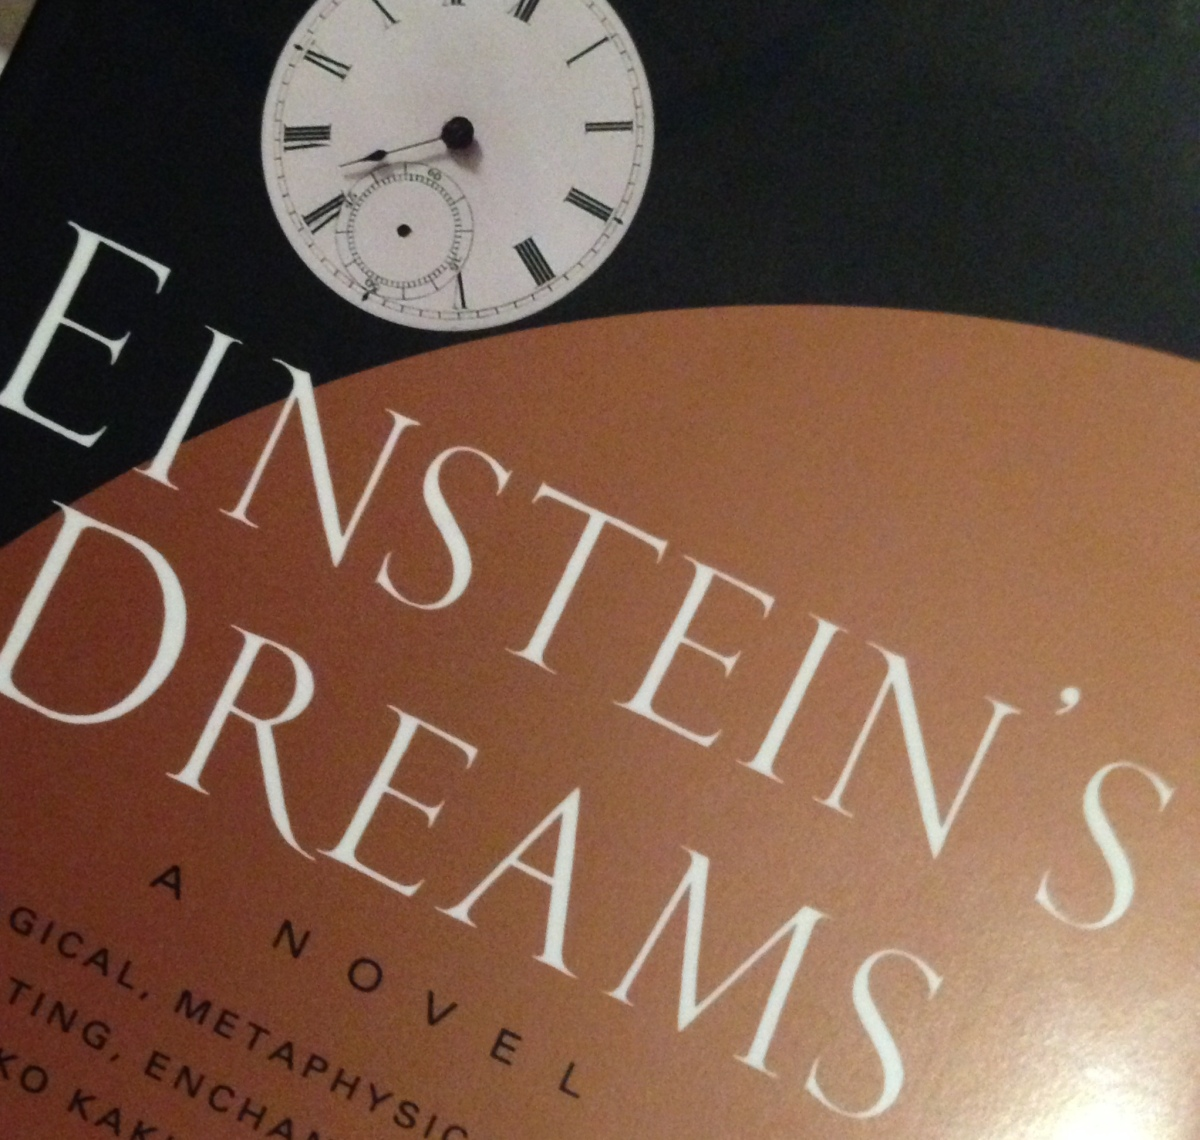 Einstein's Dreams: An Overdue Review